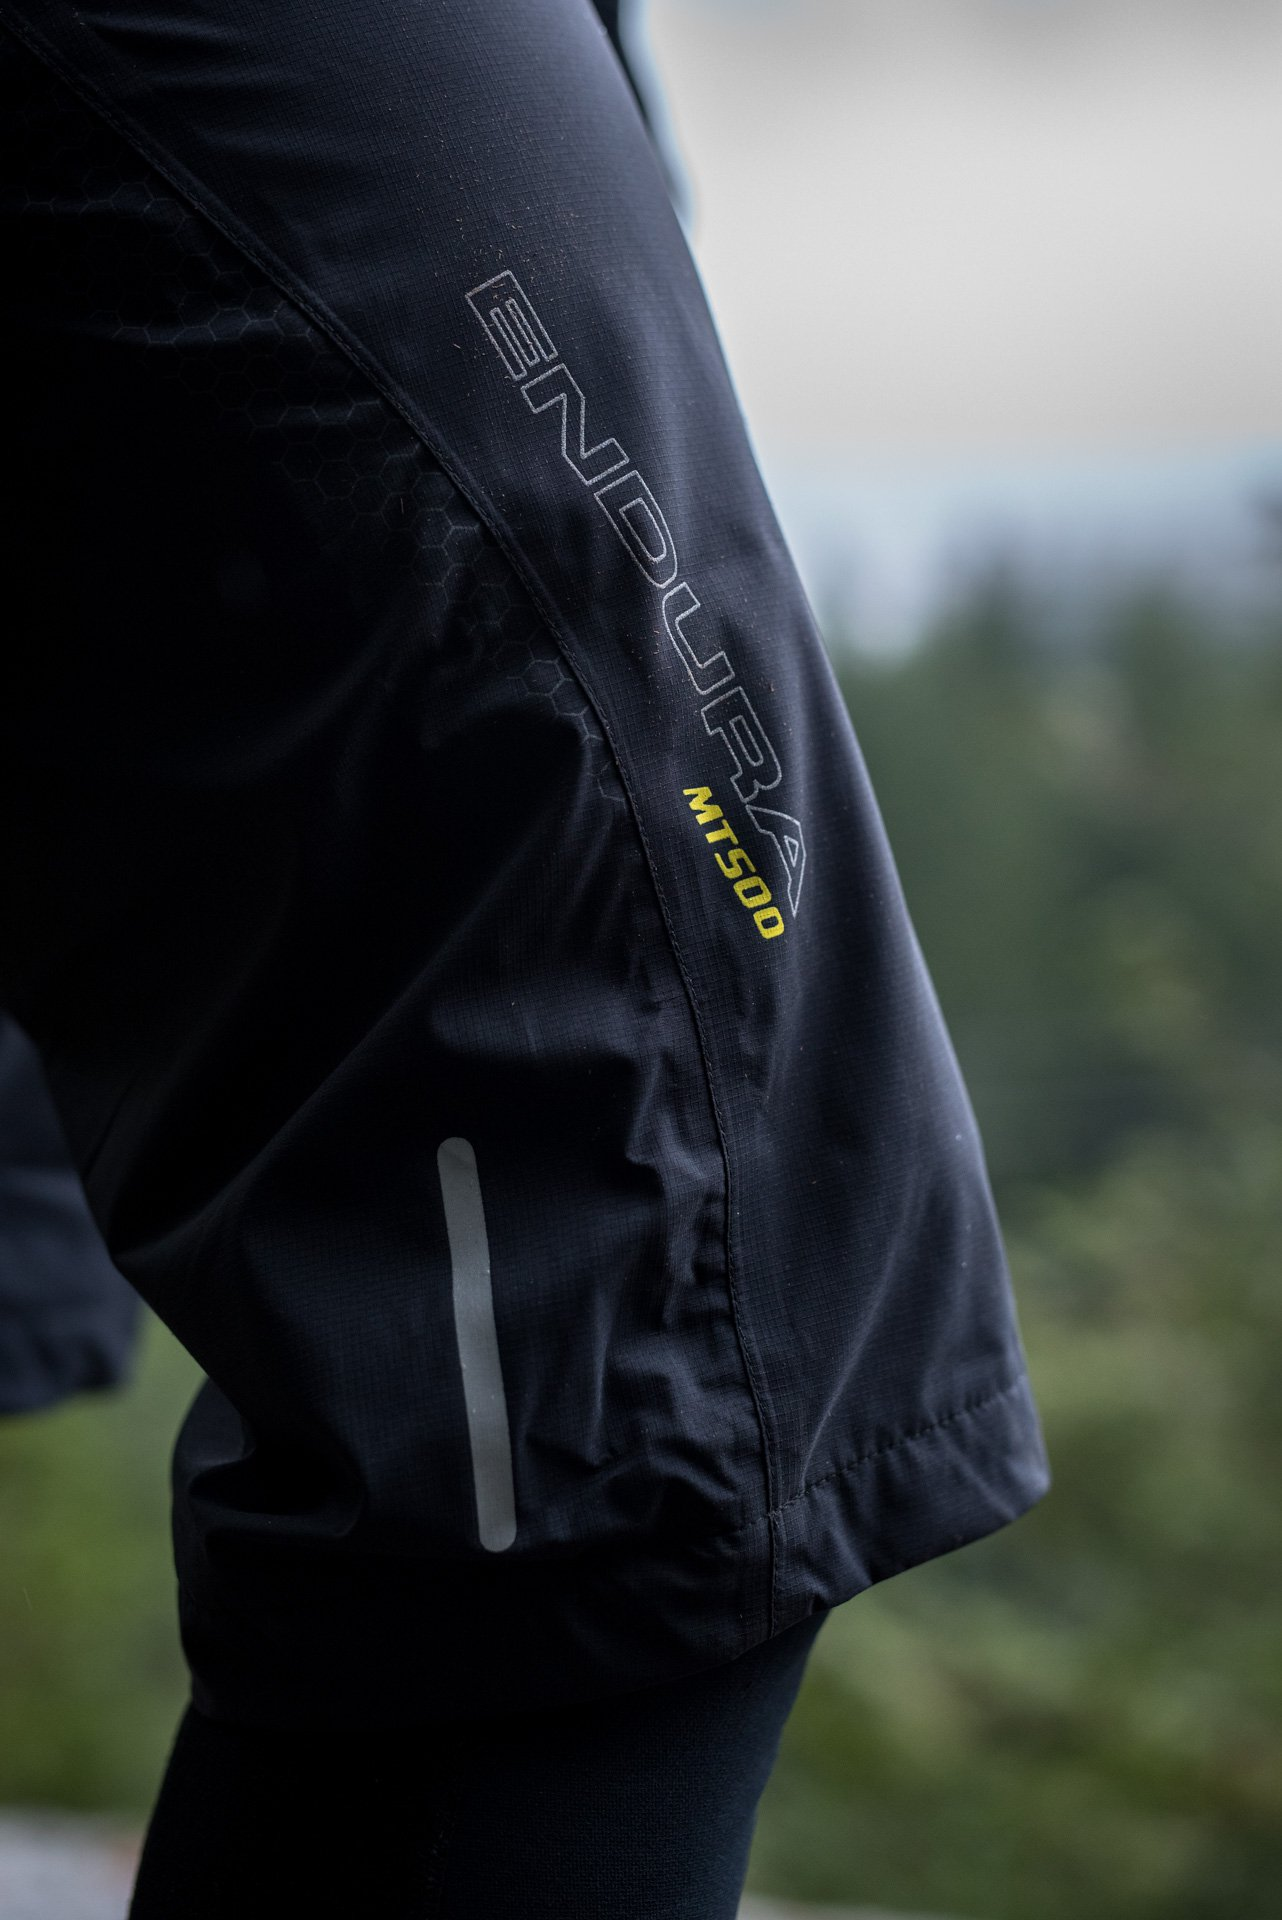 nsmb_2017_gear_review__apparel_7mesh_guardian-9079.jpg